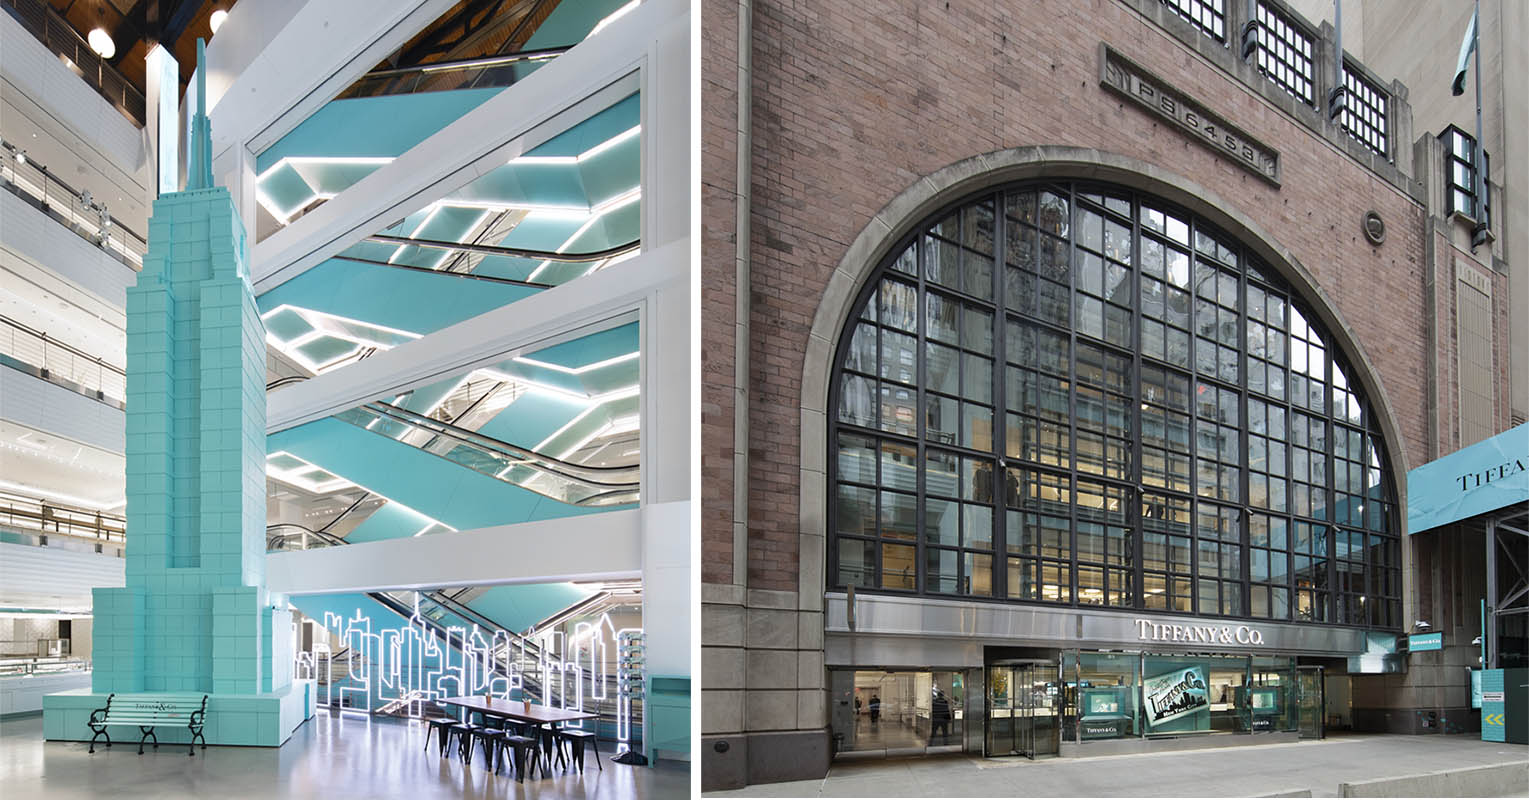 Tiffany S Makes Unprecedented Move Next Door To Flagship Store On Fifth Avenue Untapped New York